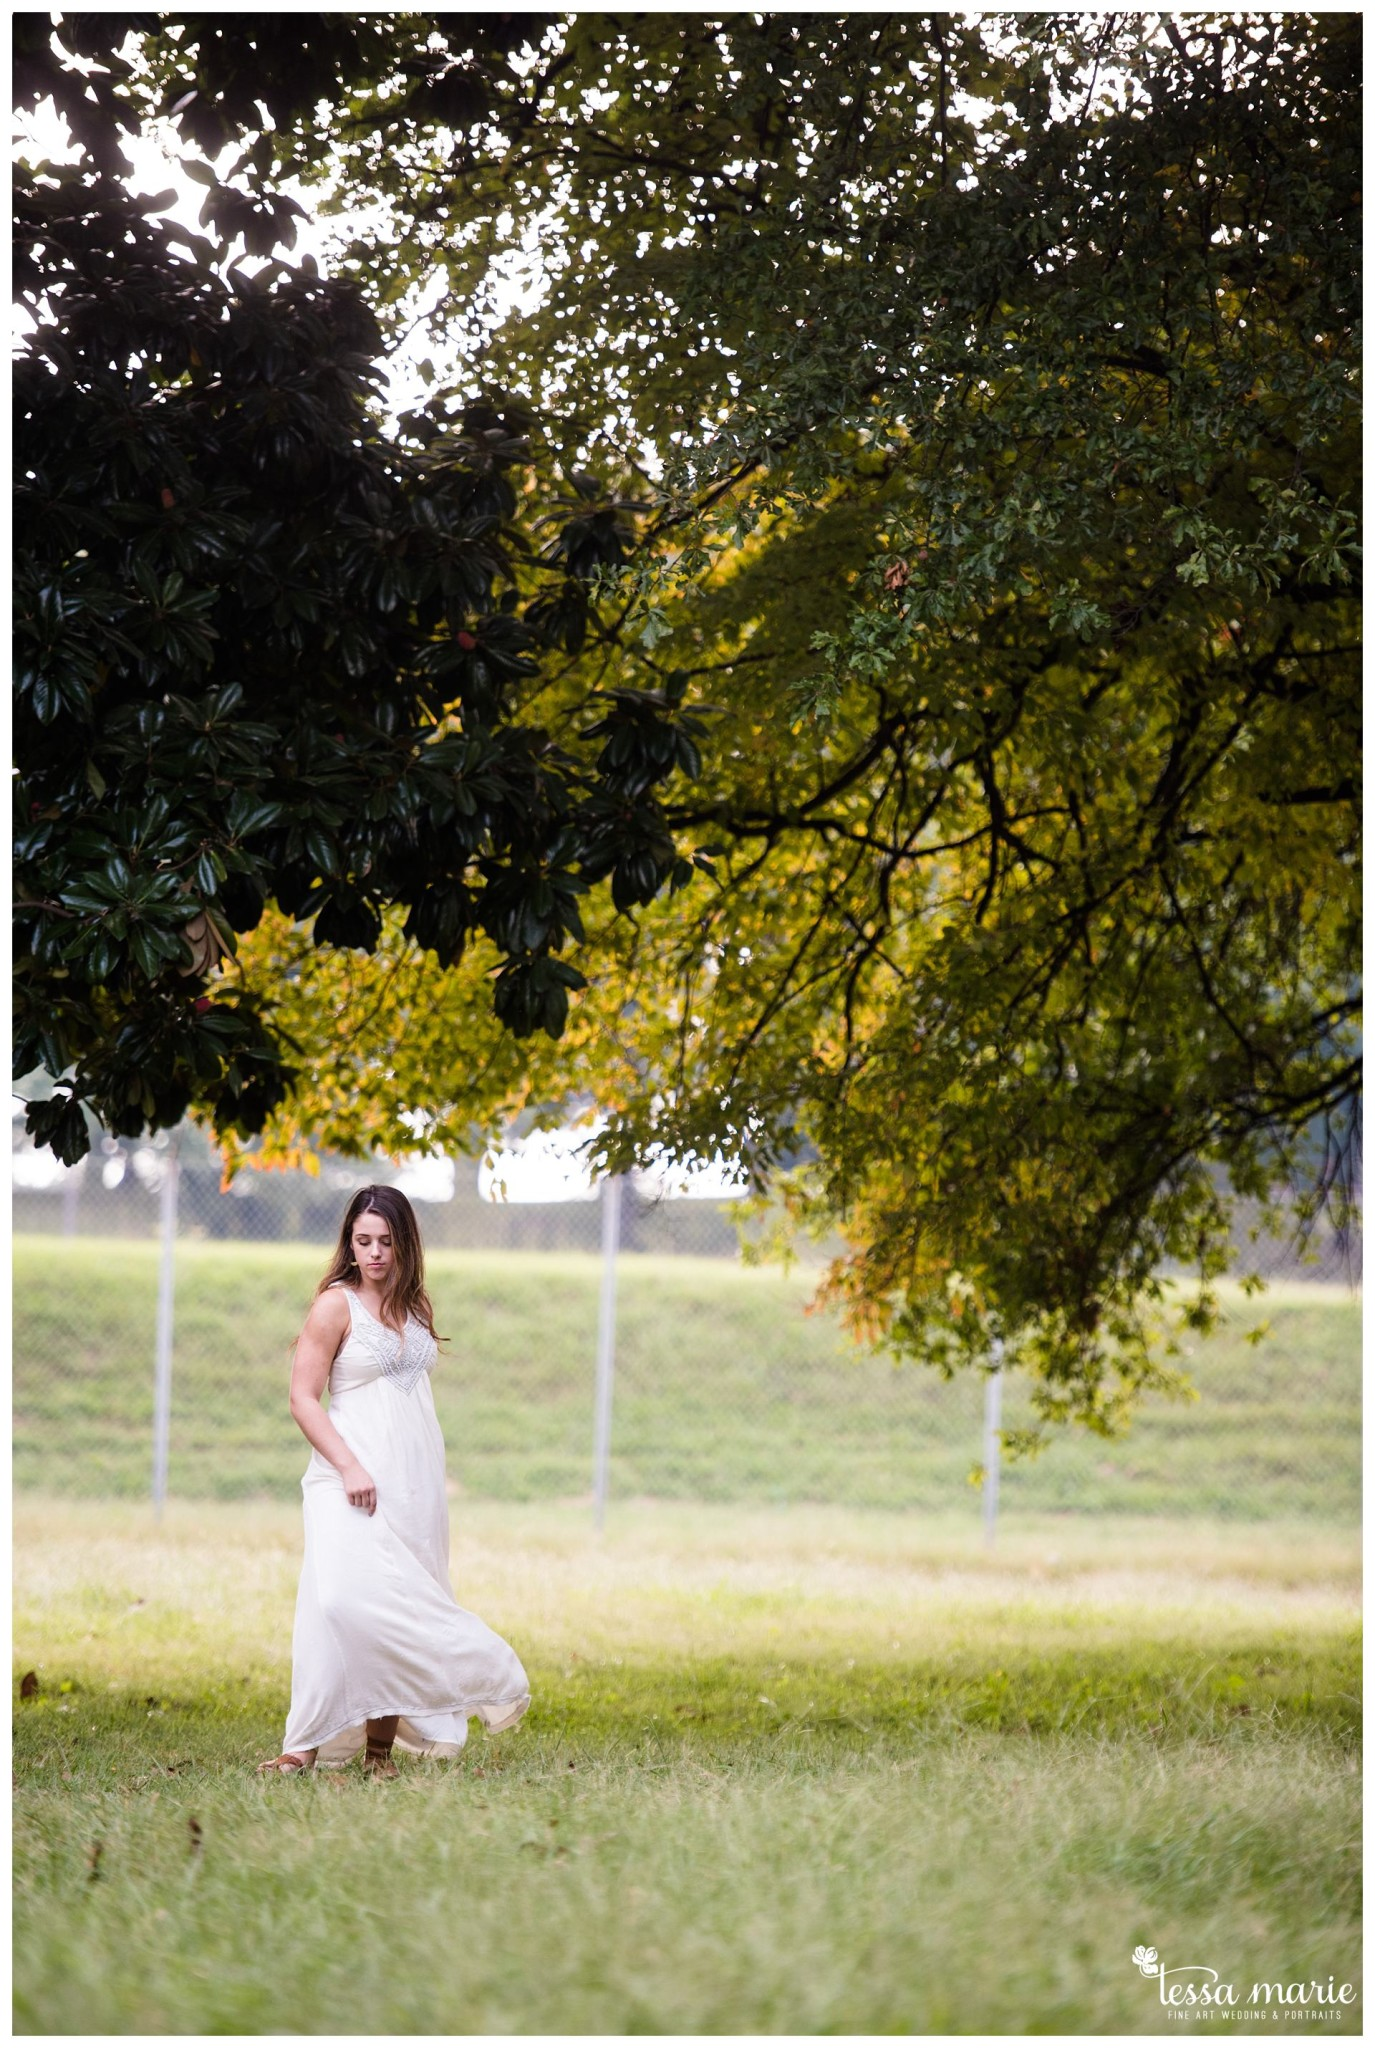 tessa_marie_weddings_legacy_story_focused_wedding_pictures_atlanta_wedding_photographer_family_pictures_portrait_Fine_art_memories_mothers_day_spring_moments_0422